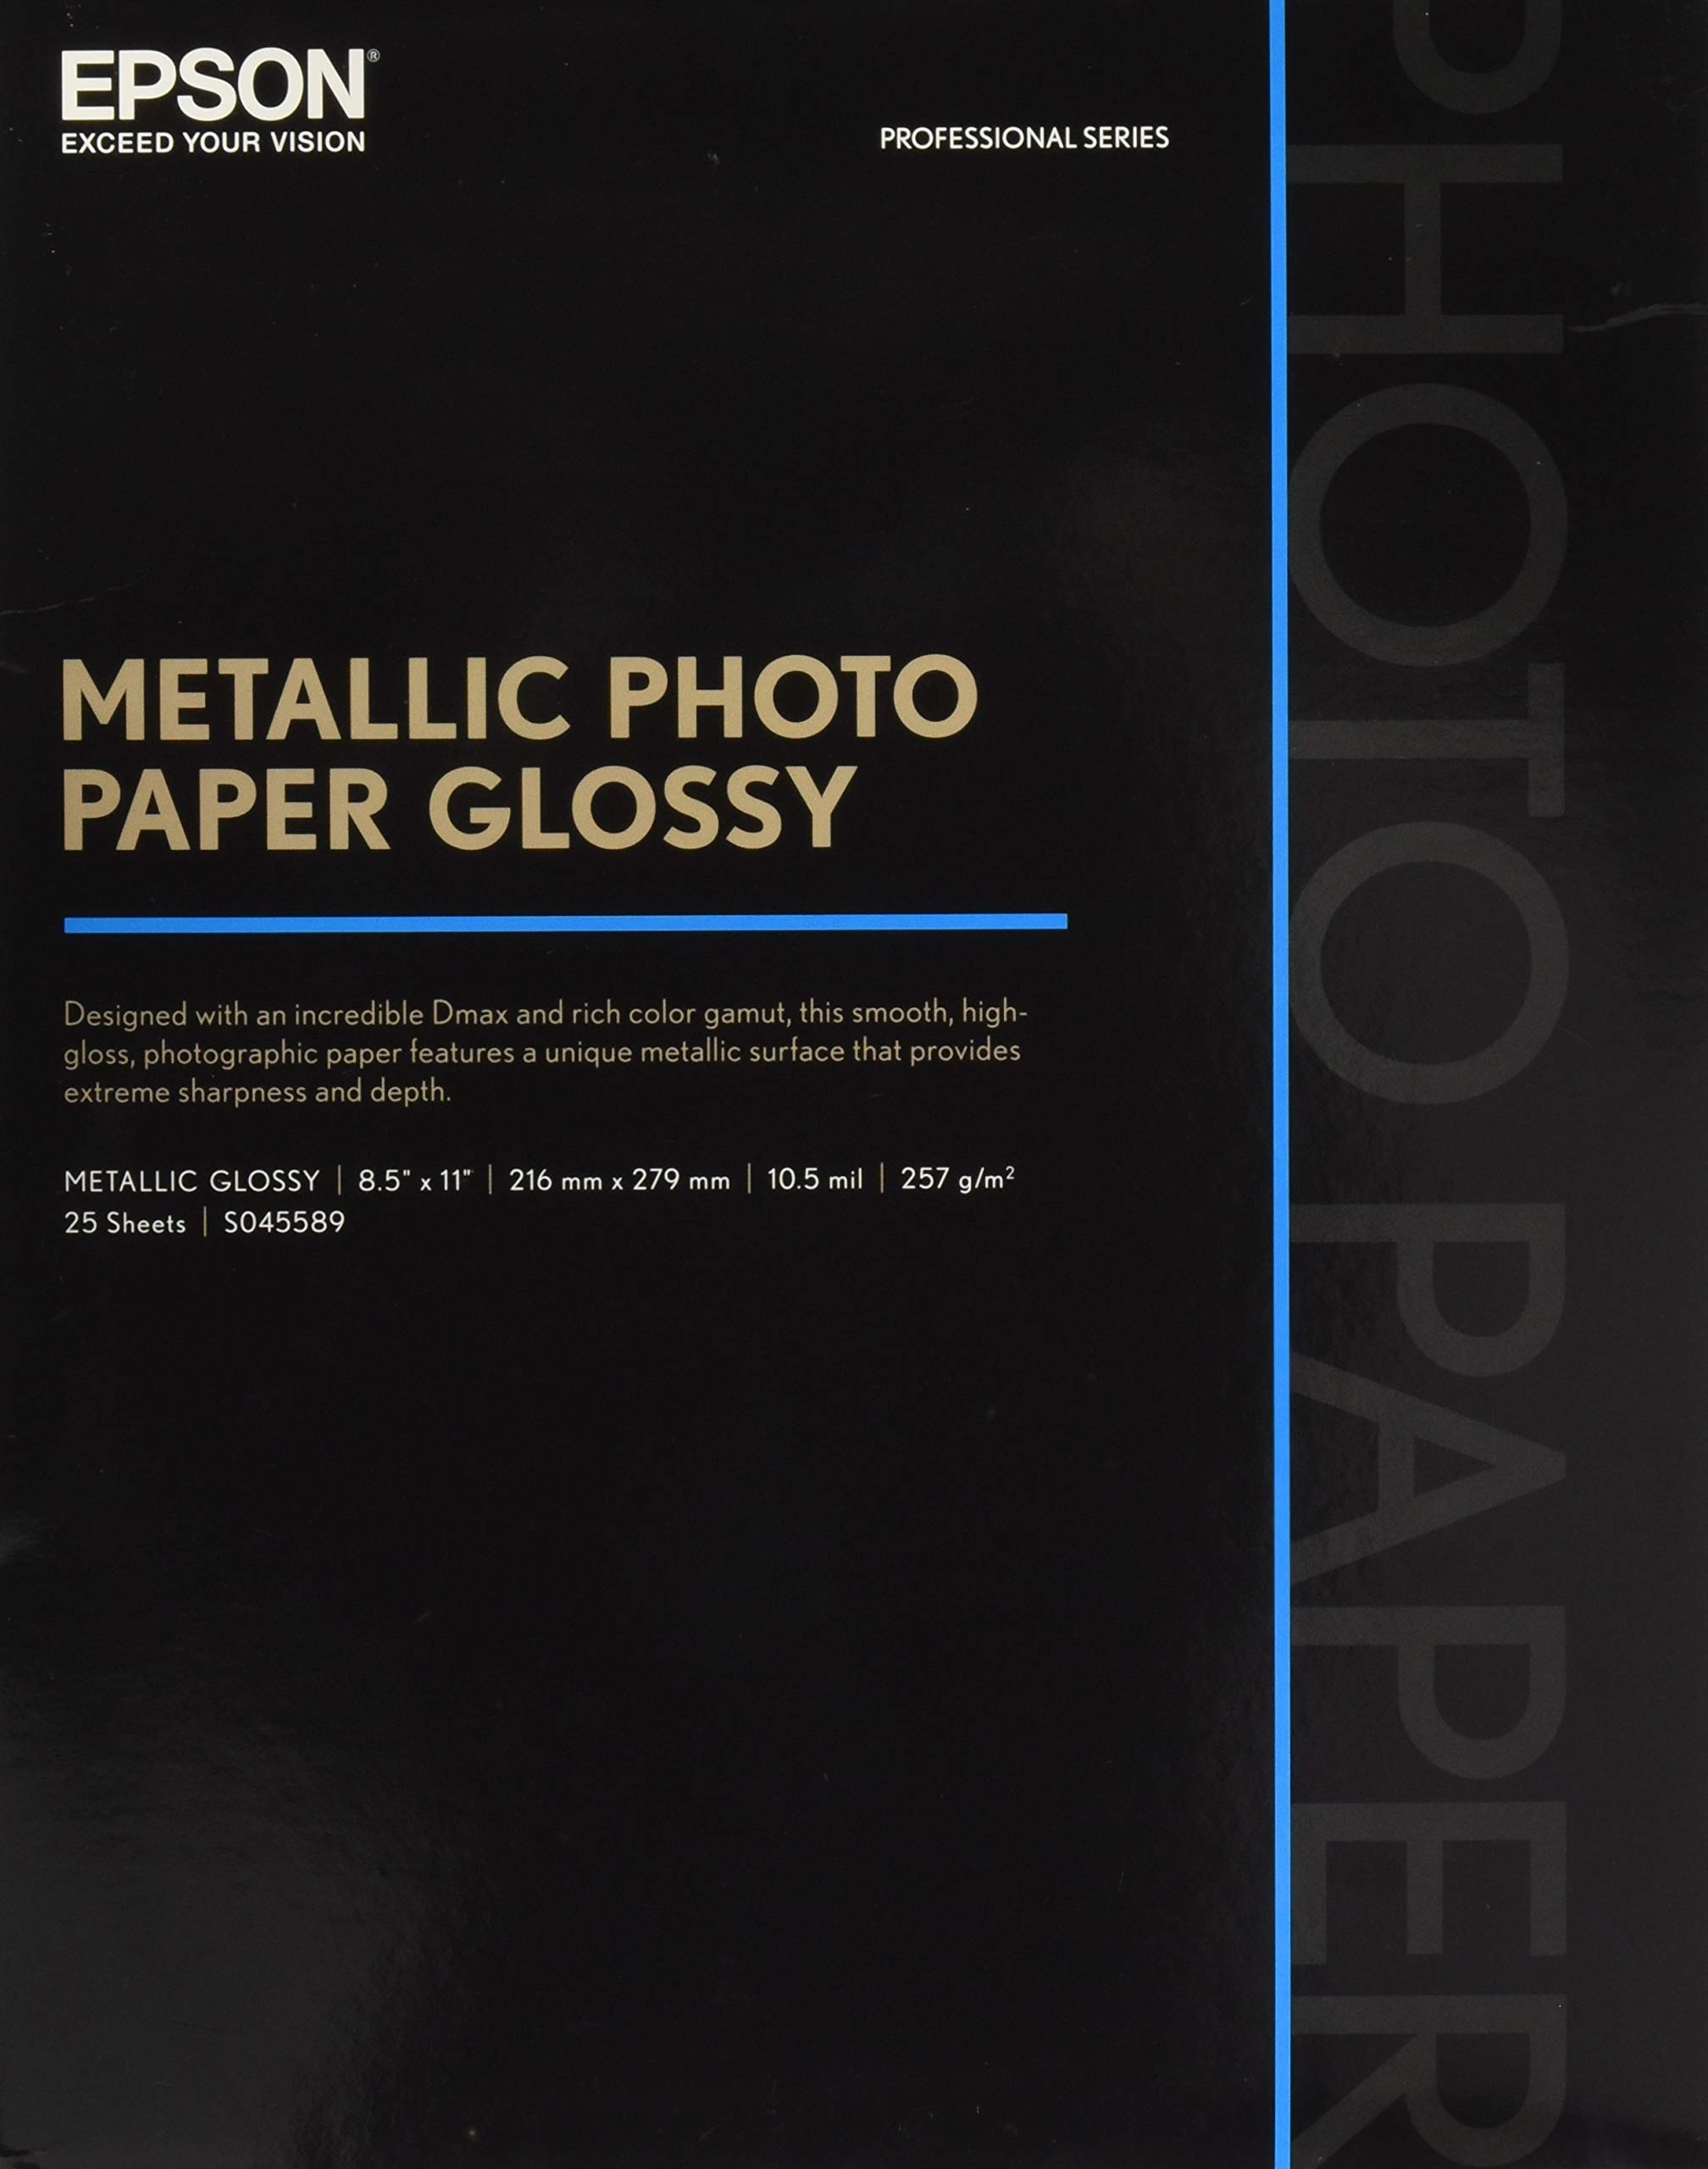 Epson S045589 Professional Series Metallic Photo Paper Glossy, 25 Sheets, 8.5x11 inch by Epson